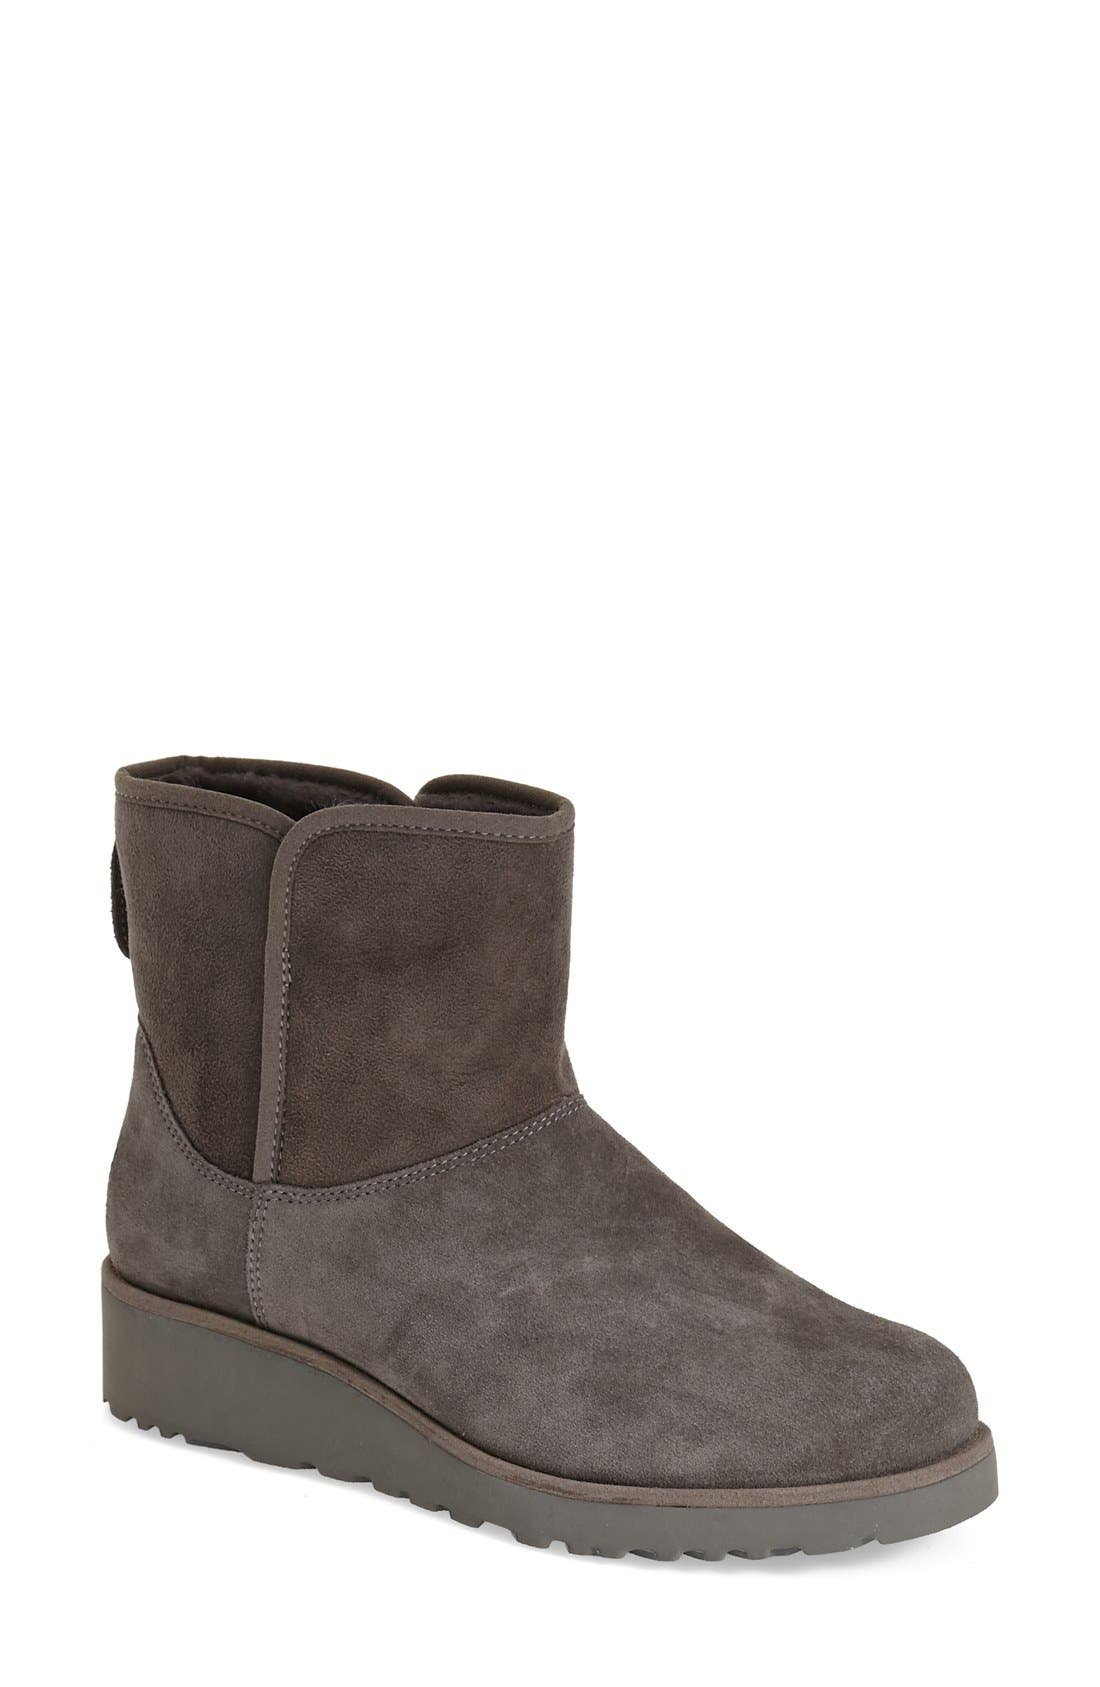 Womens Ugg Kristin - Classic Slim(TM) Water Resistant Mini Boot, Size 9 M - Grey